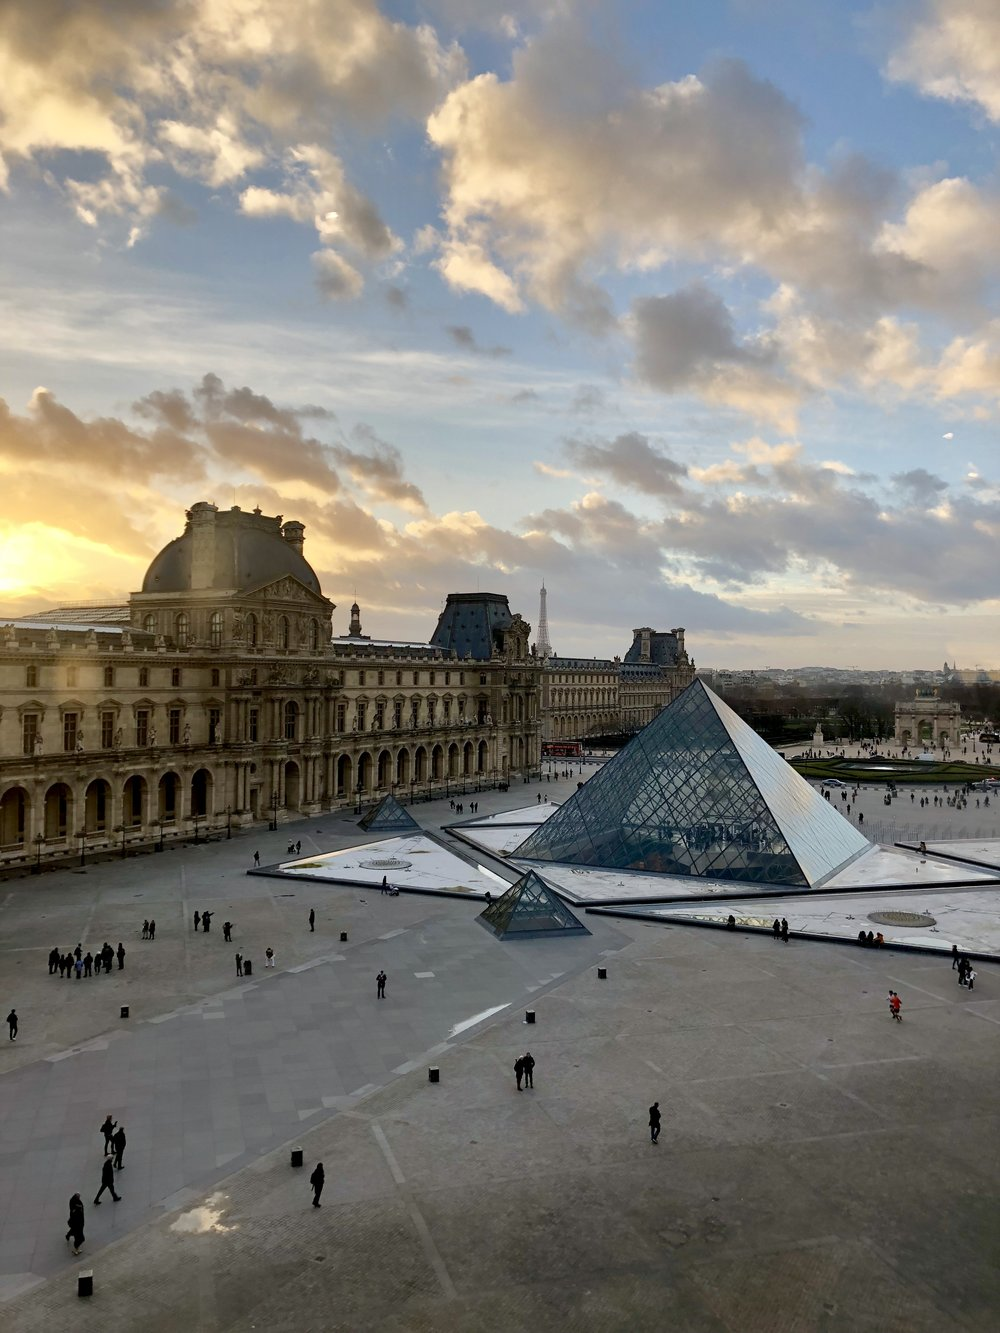 Paris at dusk, seen from inside the Louvre. Photo Credit: Jaycee Miller